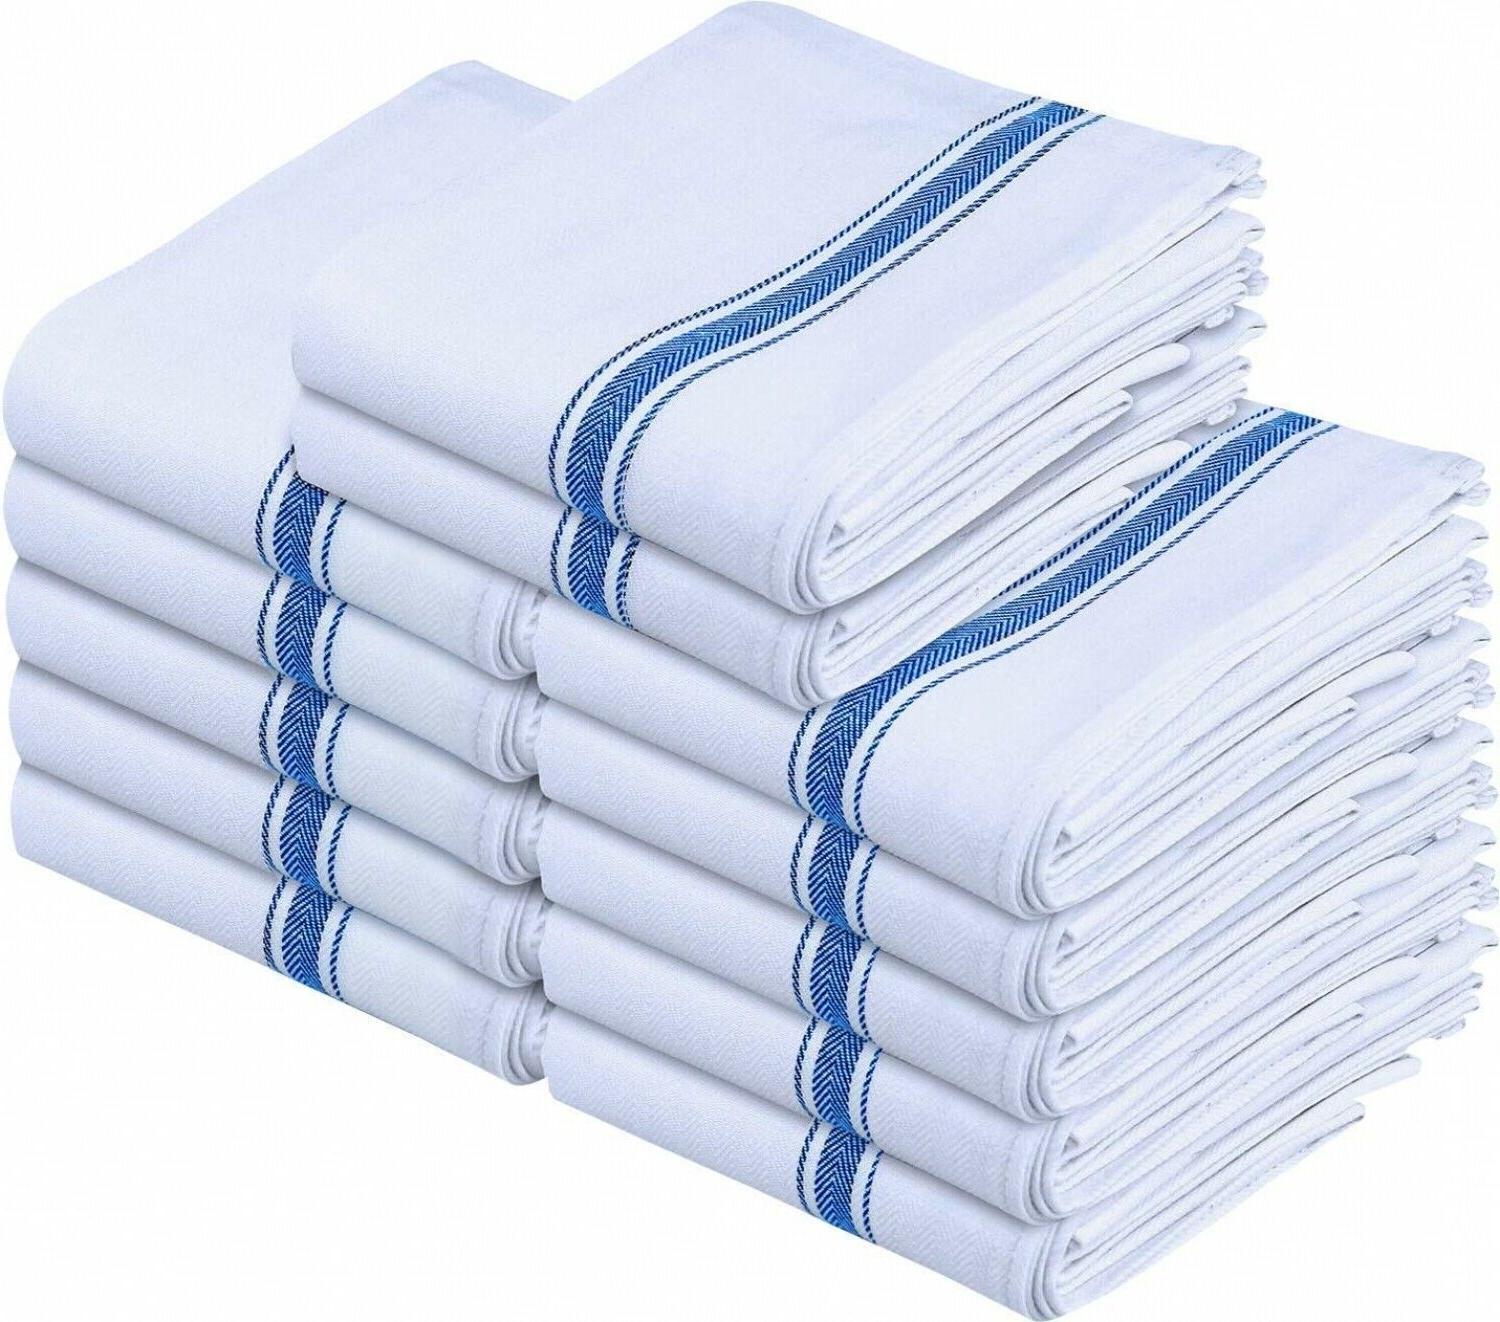 Utopia 12- White Towels inches,